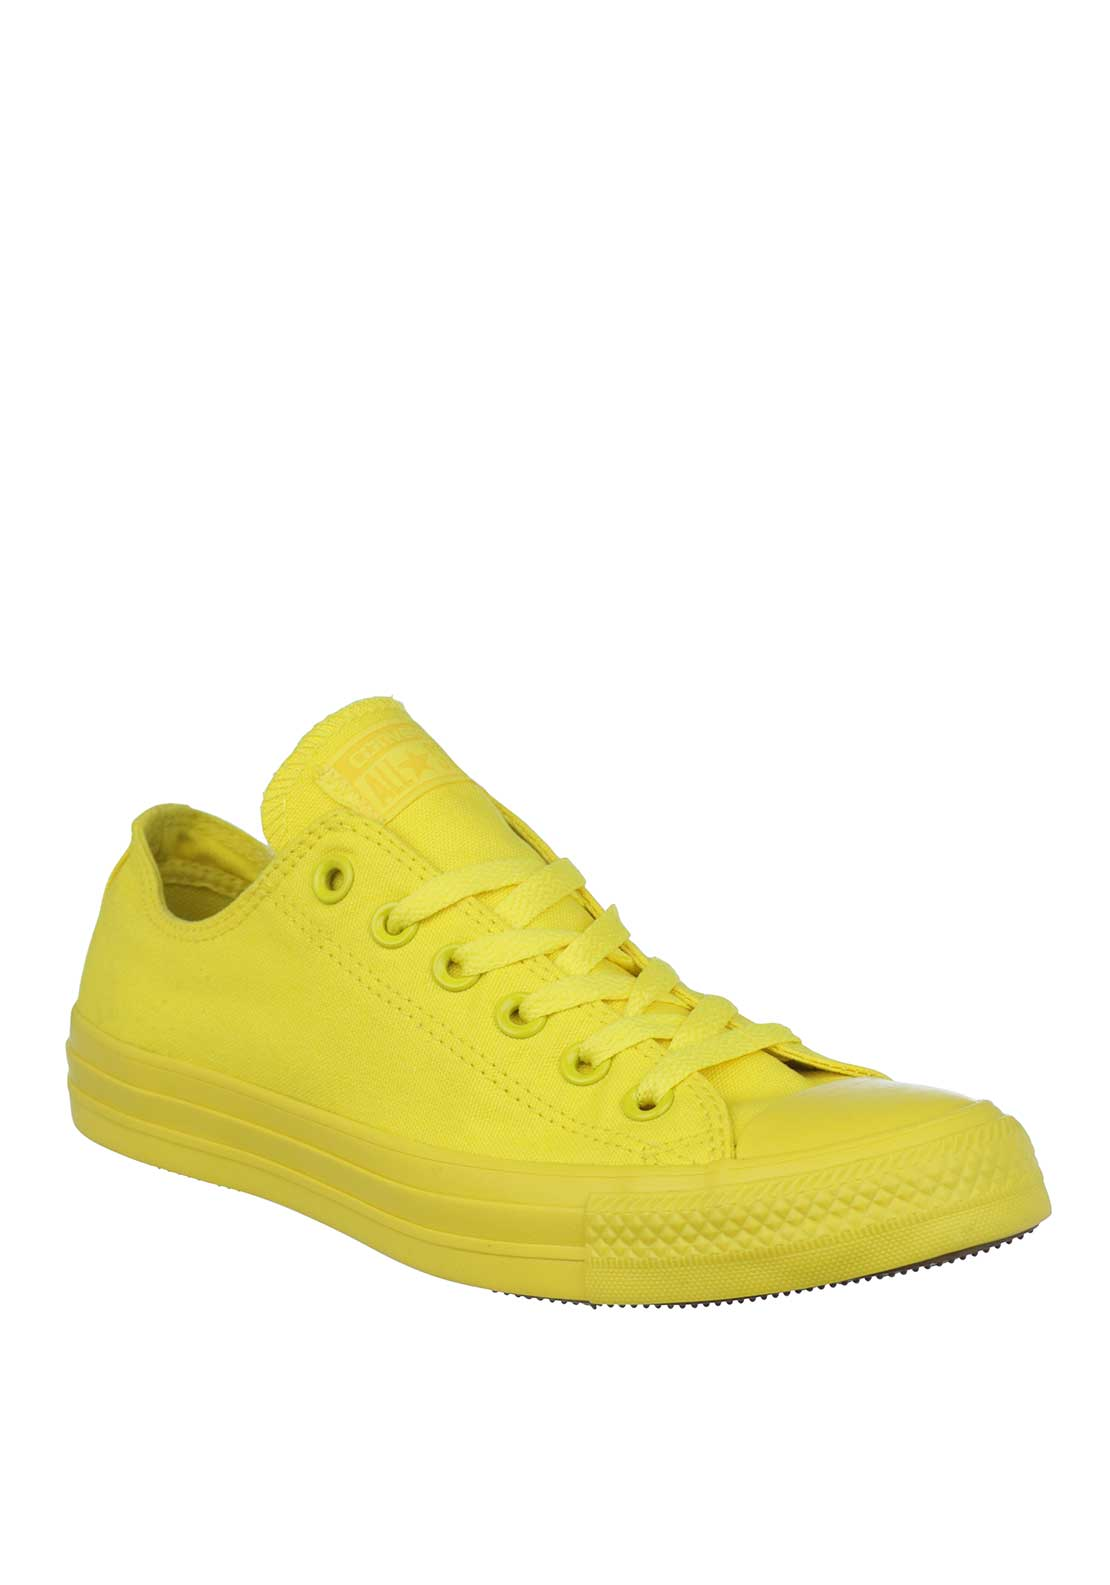 Converse Womens All Star Ankle Trainers, Yellow